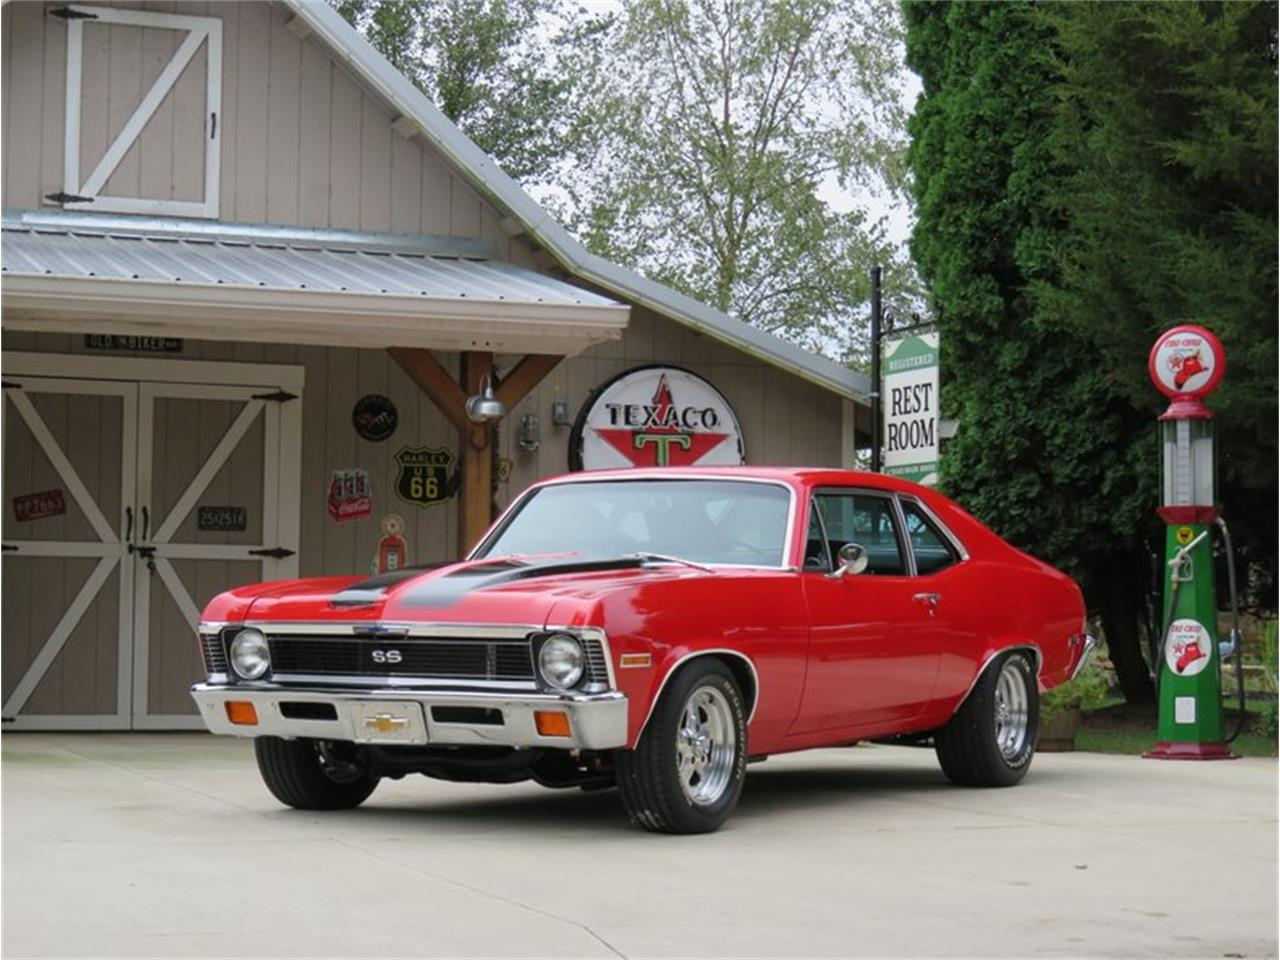 Large Picture of '71 Chevrolet Nova located in Kokomo Indiana Auction Vehicle Offered by Earlywine Auctions - PNQ5